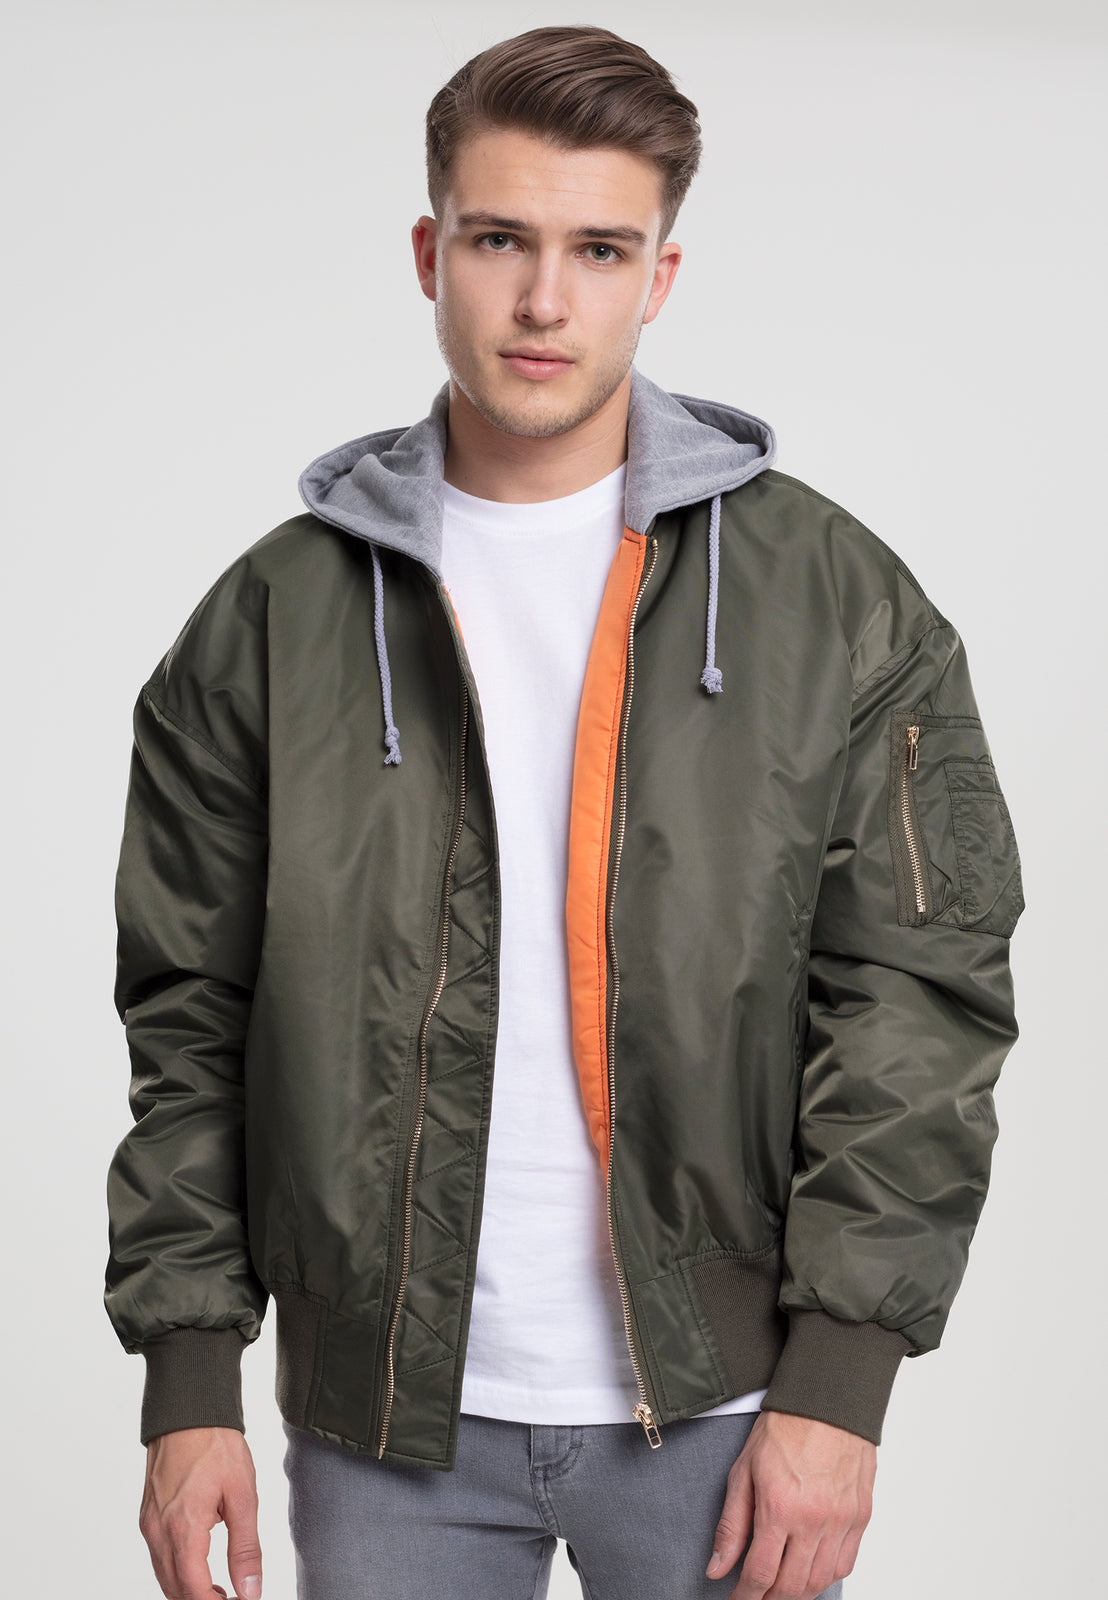 Hooded Oversized Bomber Jacket olv/gry